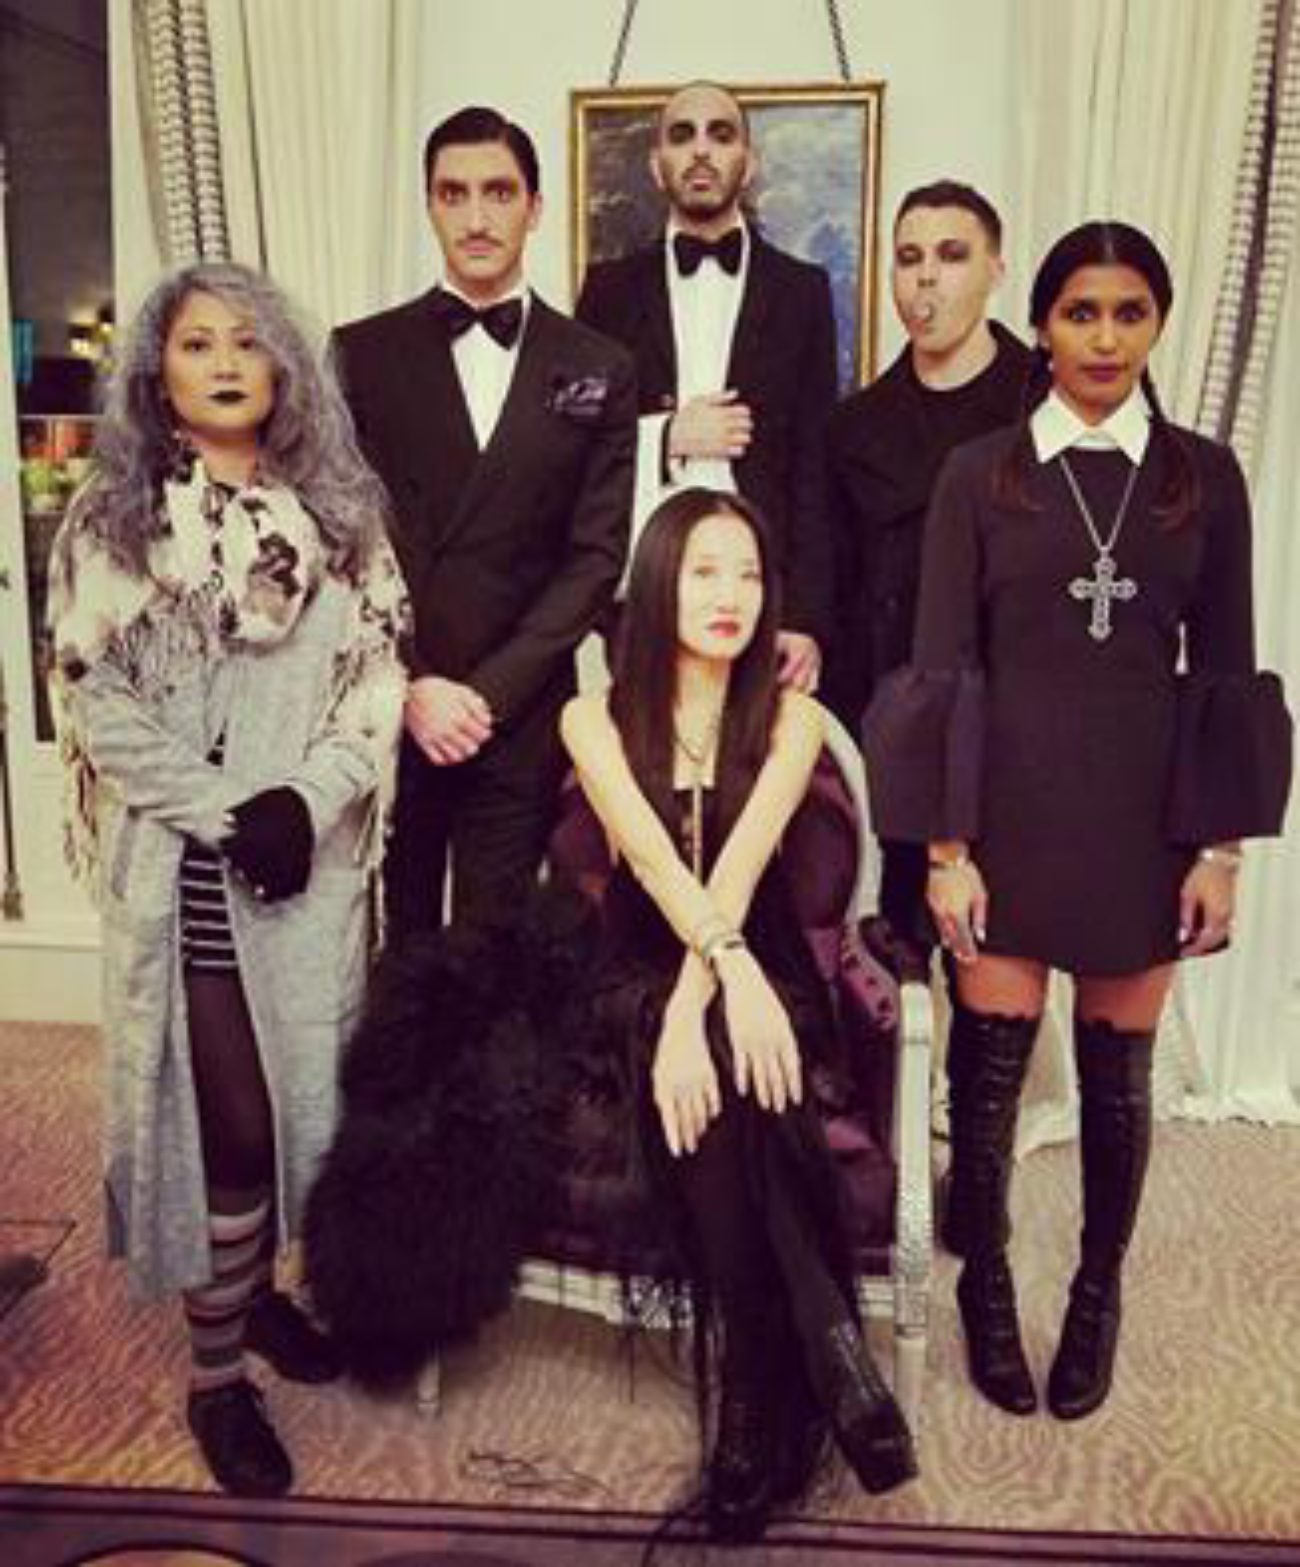 Halloween with Vera Wang and her Gang